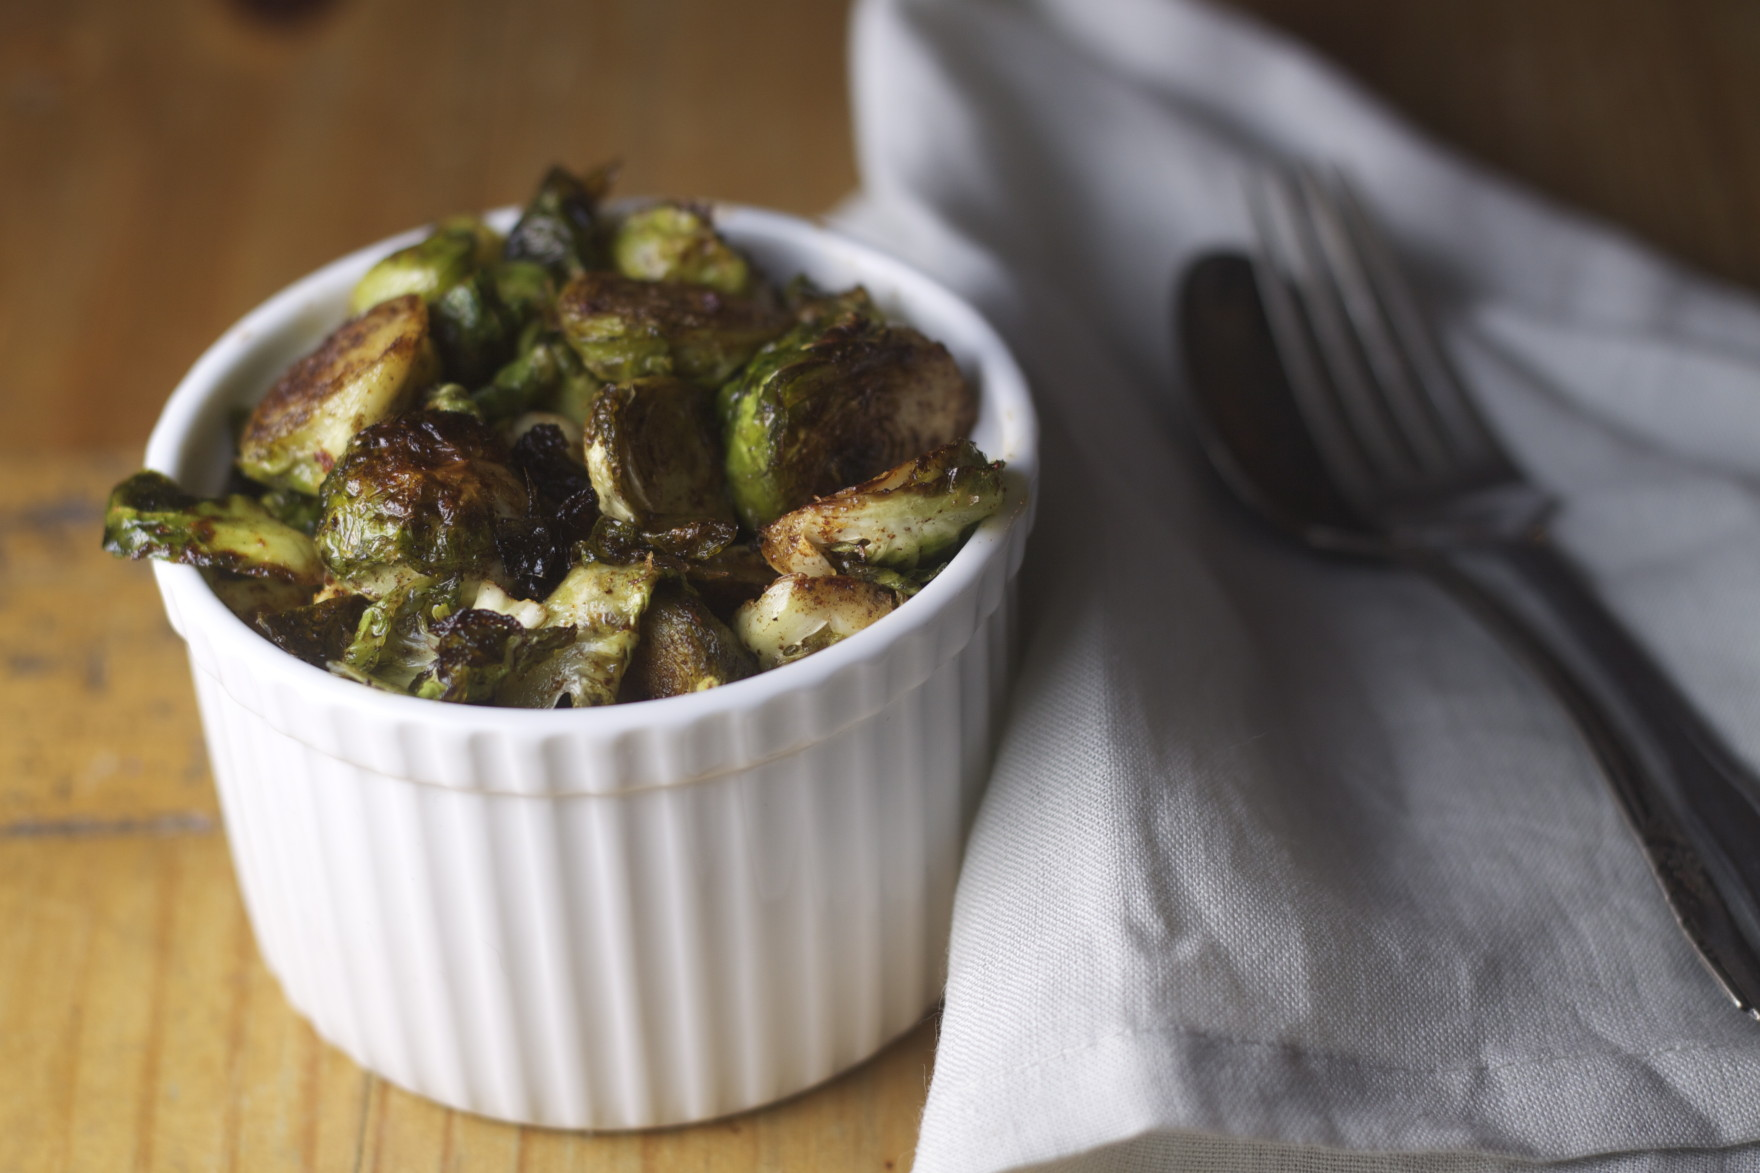 Vegan Crispy Brussels Sprouts with Smoked Paprika